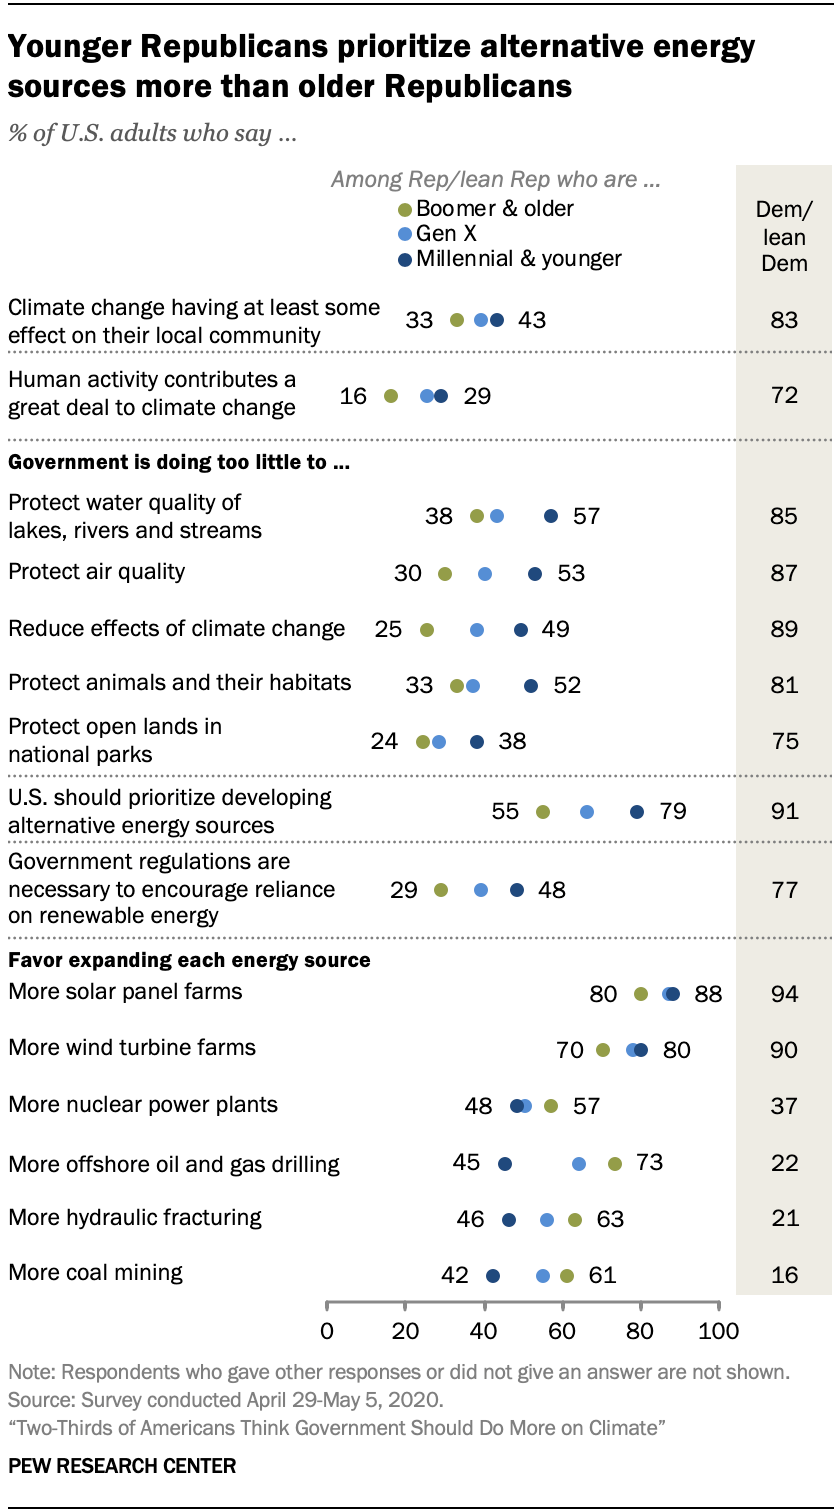 Younger Republicans prioritize alternative energy sources more than older Republicans